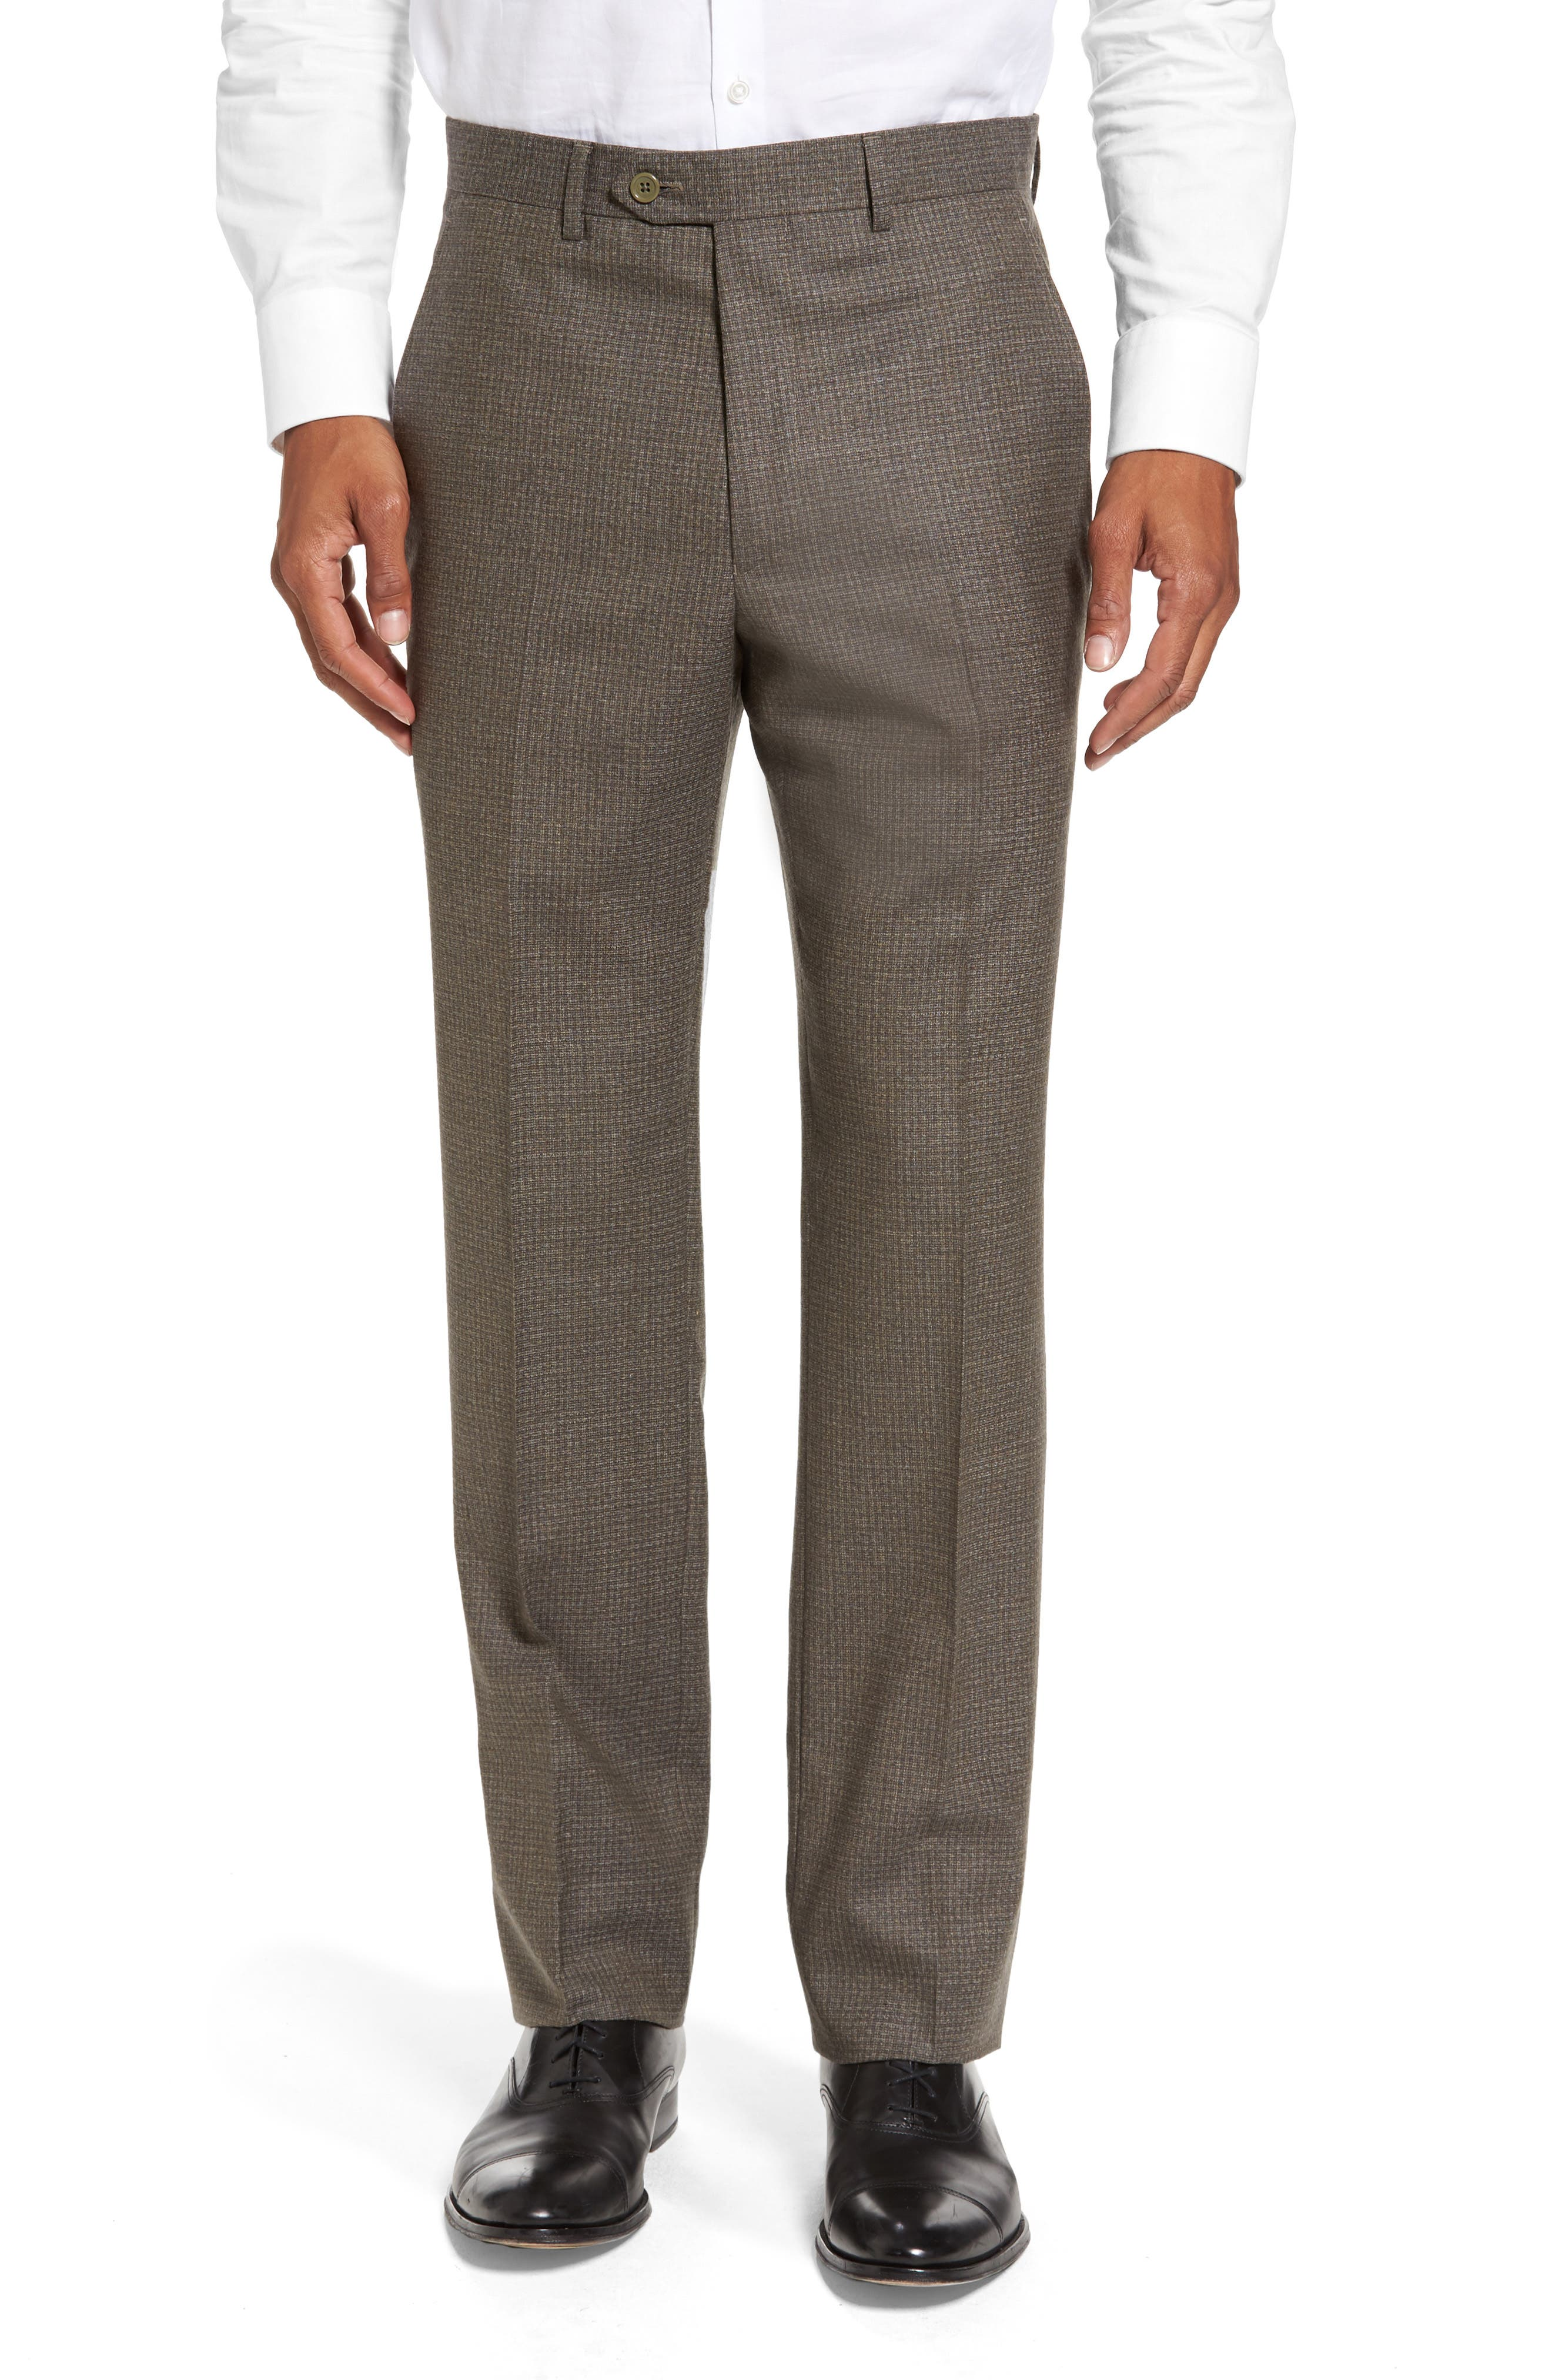 Romero Regular Fit Flat Front Trousers,                             Main thumbnail 1, color,                             Taupe